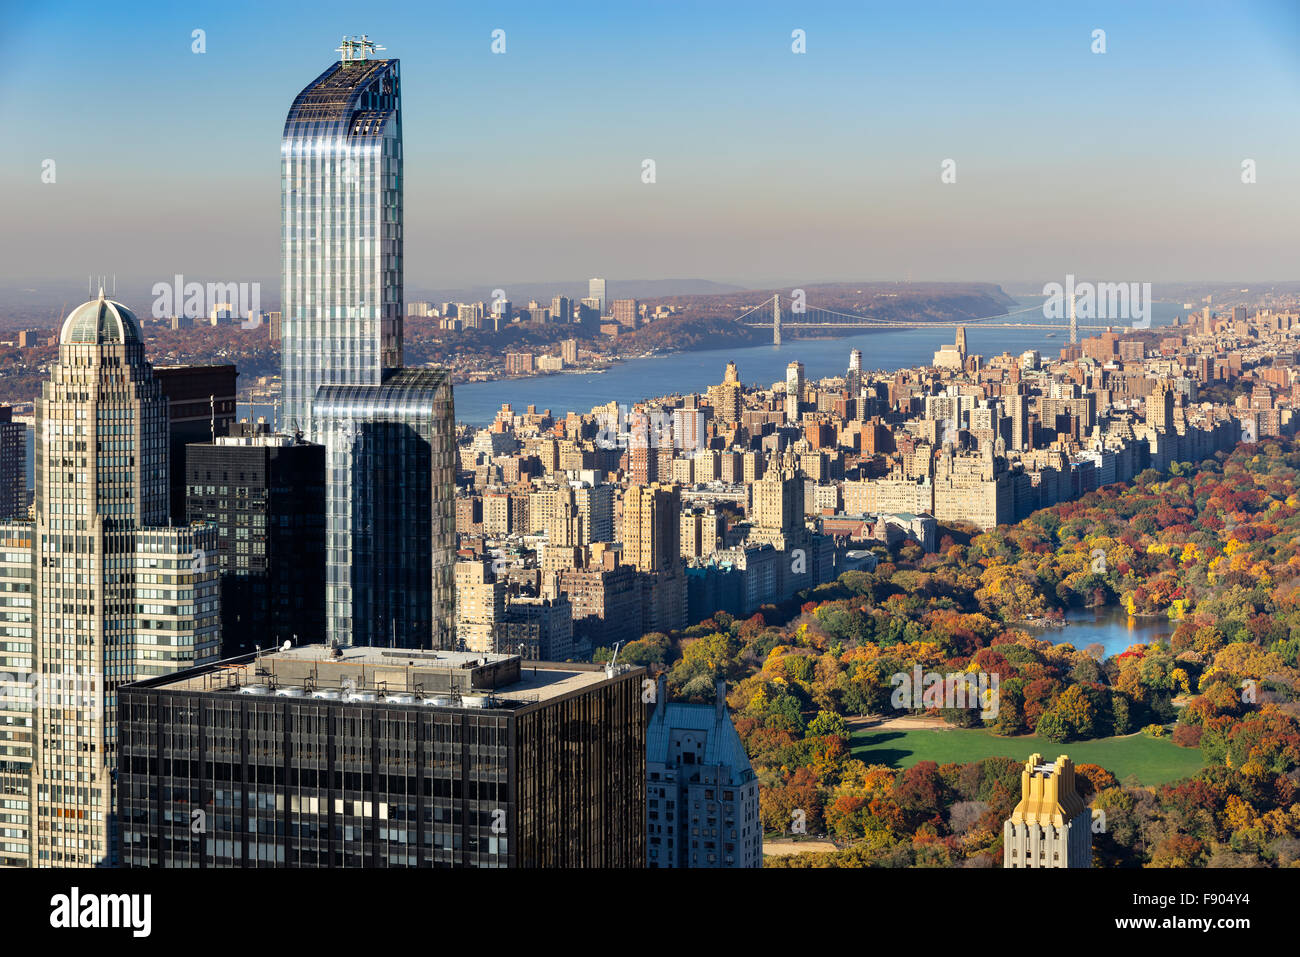 Aerial View of Central Park in Fall, Upper West Side with Midtown skyscrapers and the Hudson River, New York City. - Stock Image